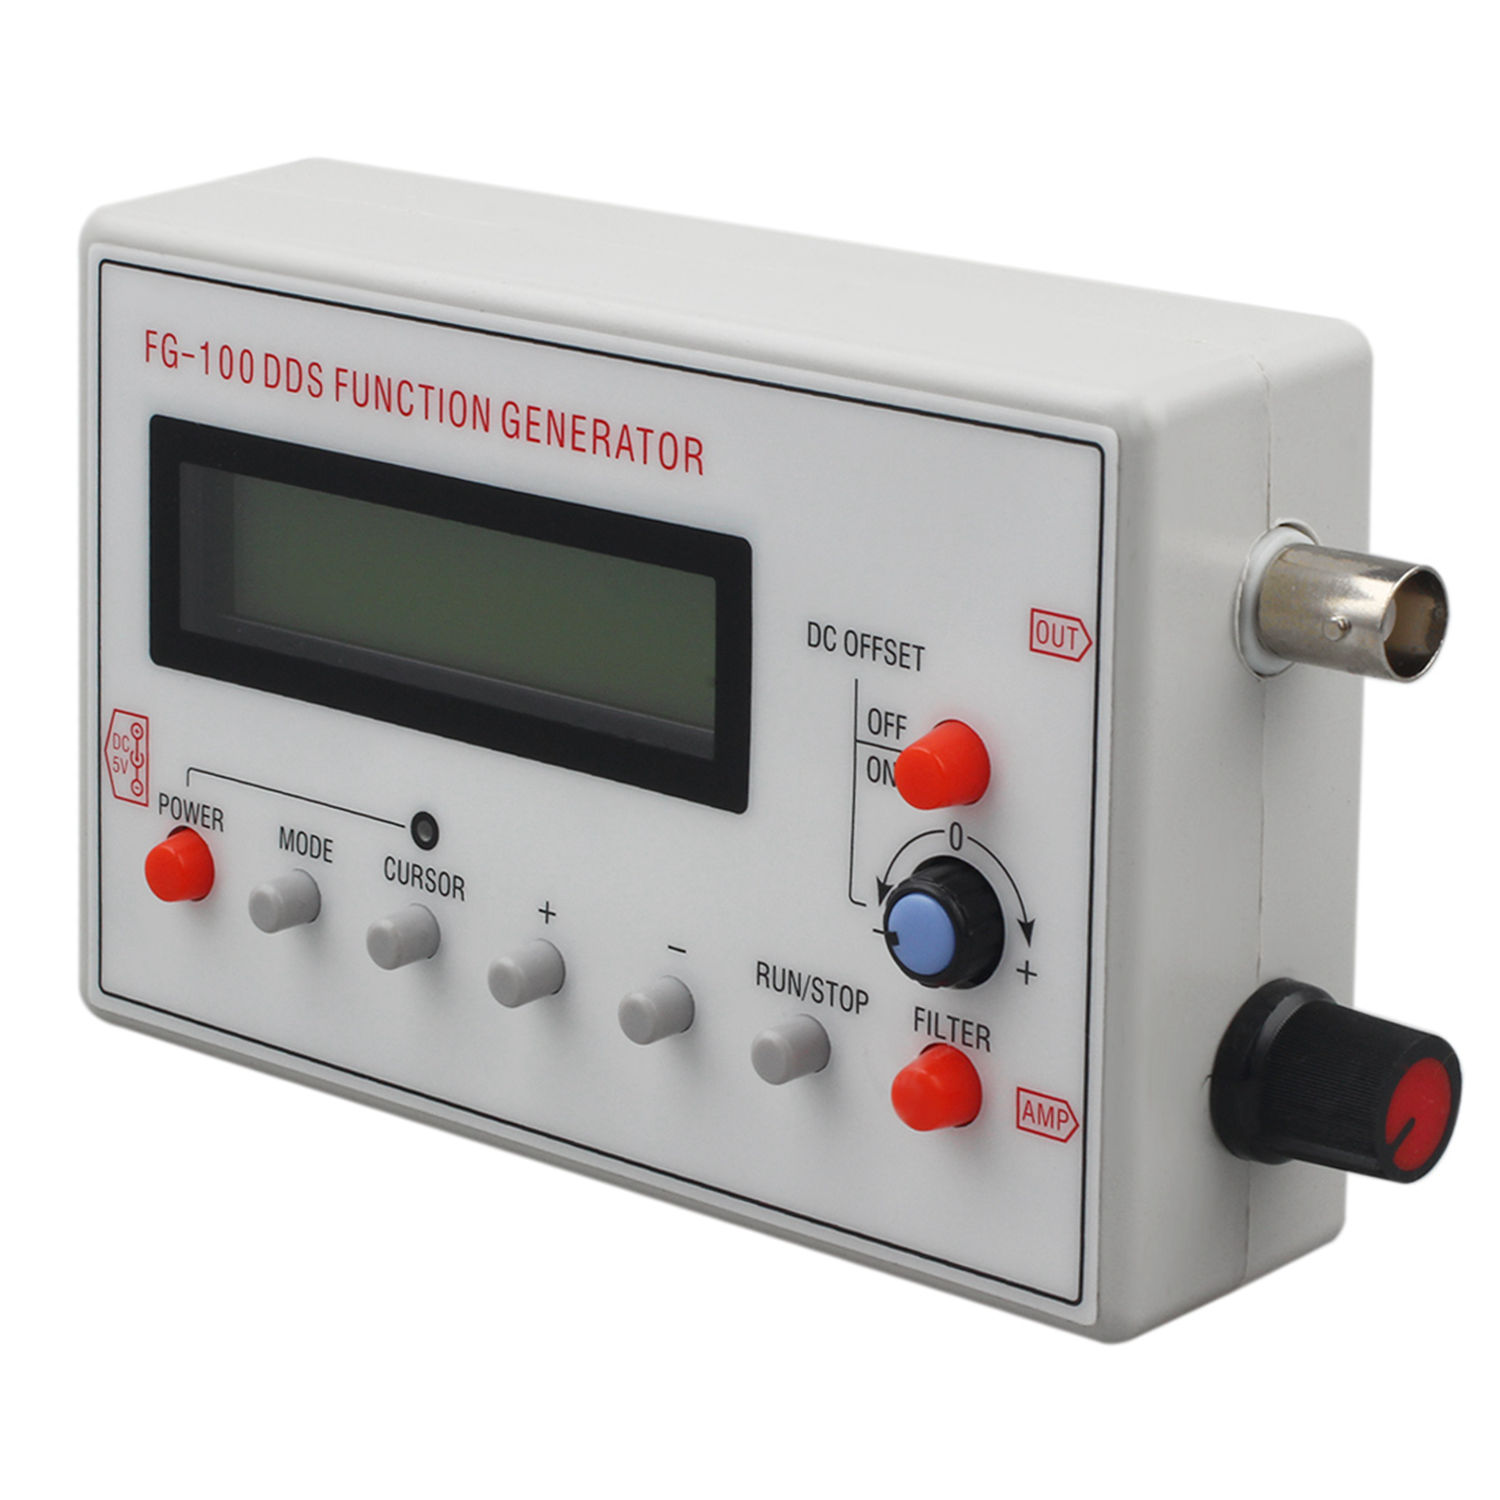 Hot sale FG-100 DDS Function Signal Generator Frequency Counter 1Hz - 500KHzHot sale FG-100 DDS Function Signal Generator Frequency Counter 1Hz - 500KHz